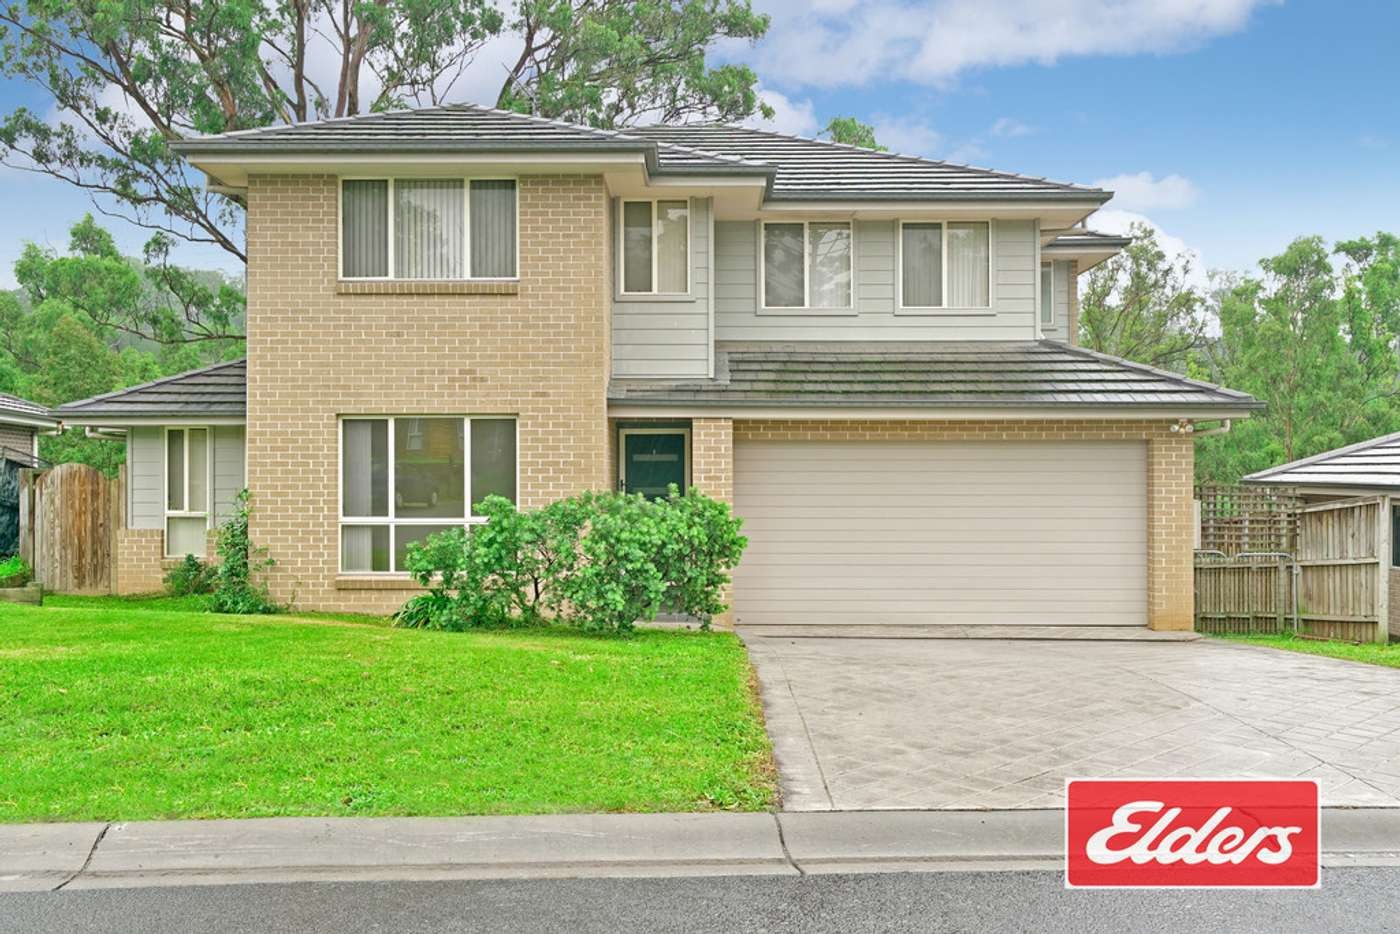 Main view of Homely house listing, 16 TAHMOOR HOUSE COURT, Tahmoor NSW 2573